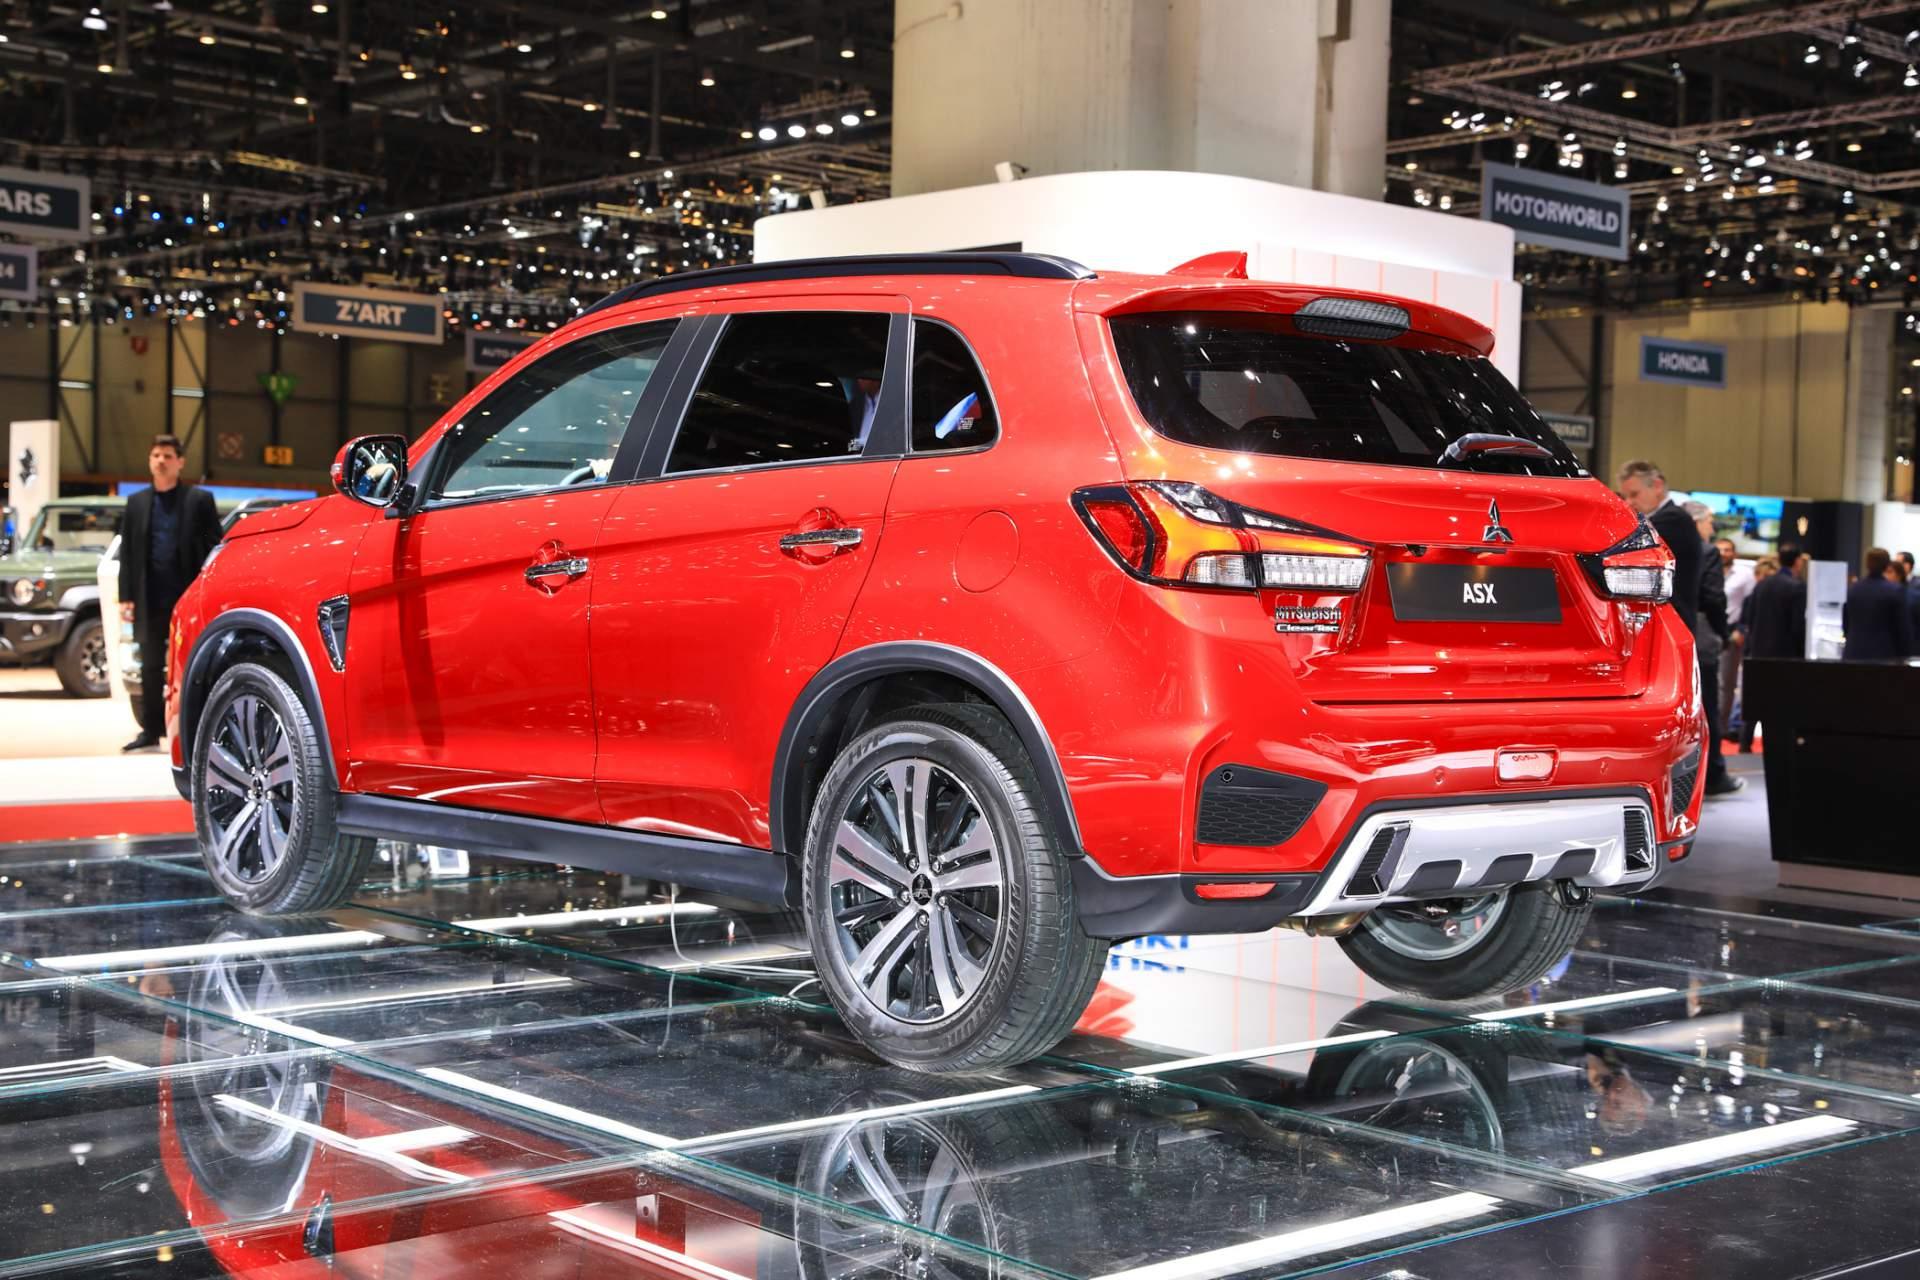 2020 Mitsubishi Asx Outlander Sport Reveals Comprehensive Makeover